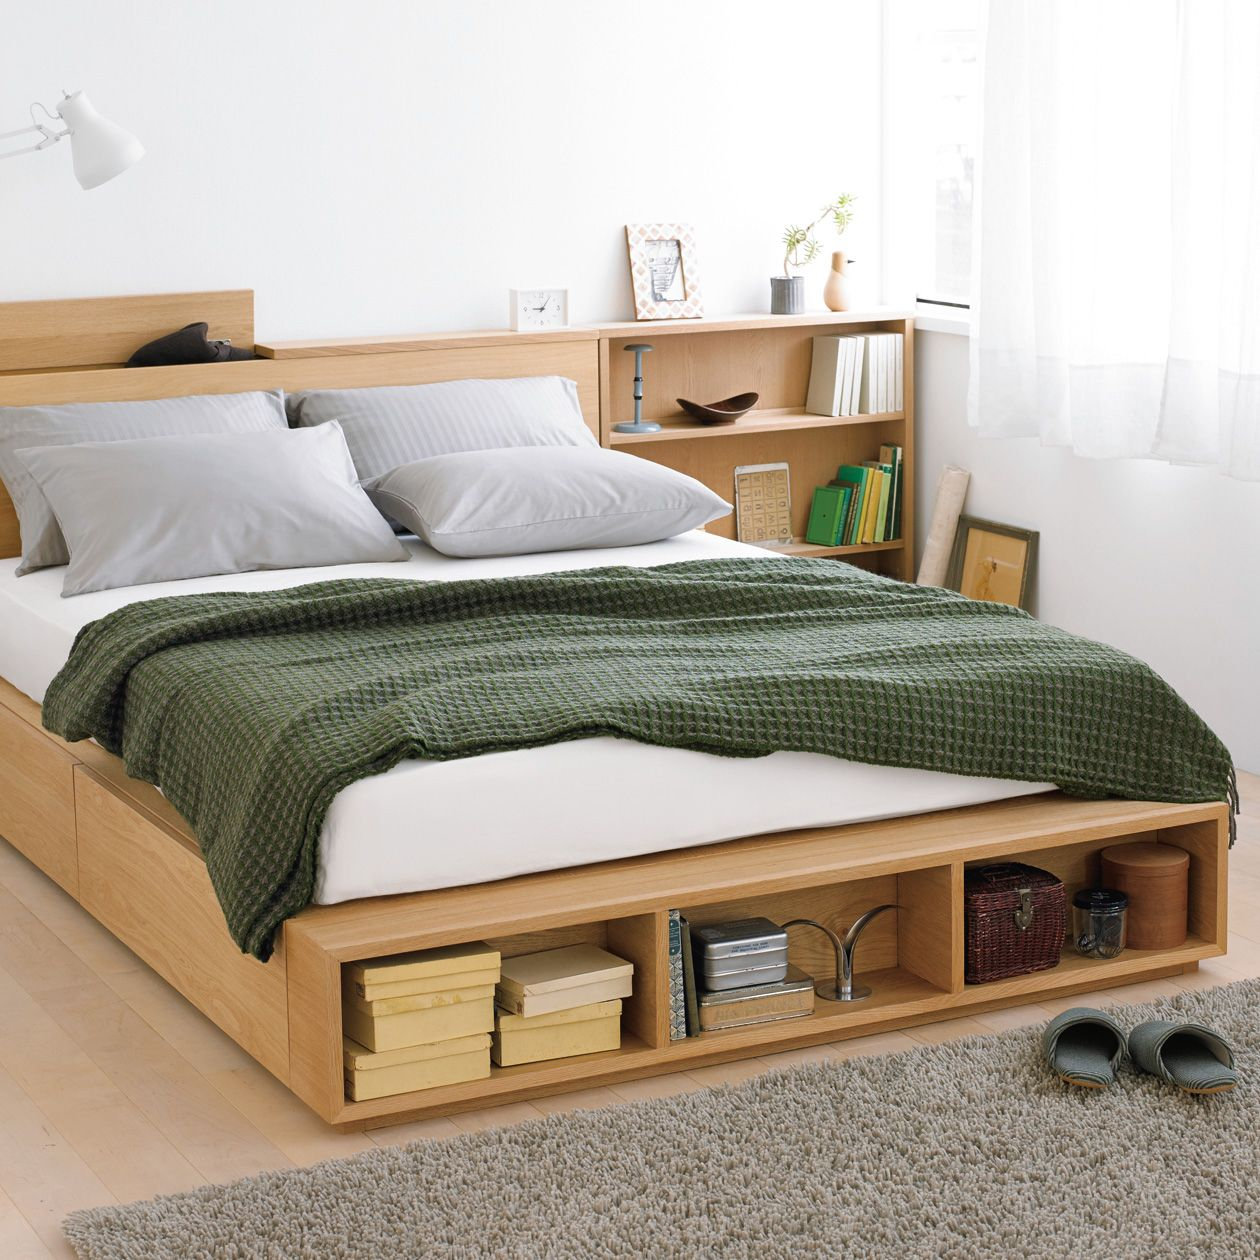 images about Home Muji Style on Pinterest Walk in wardrobe